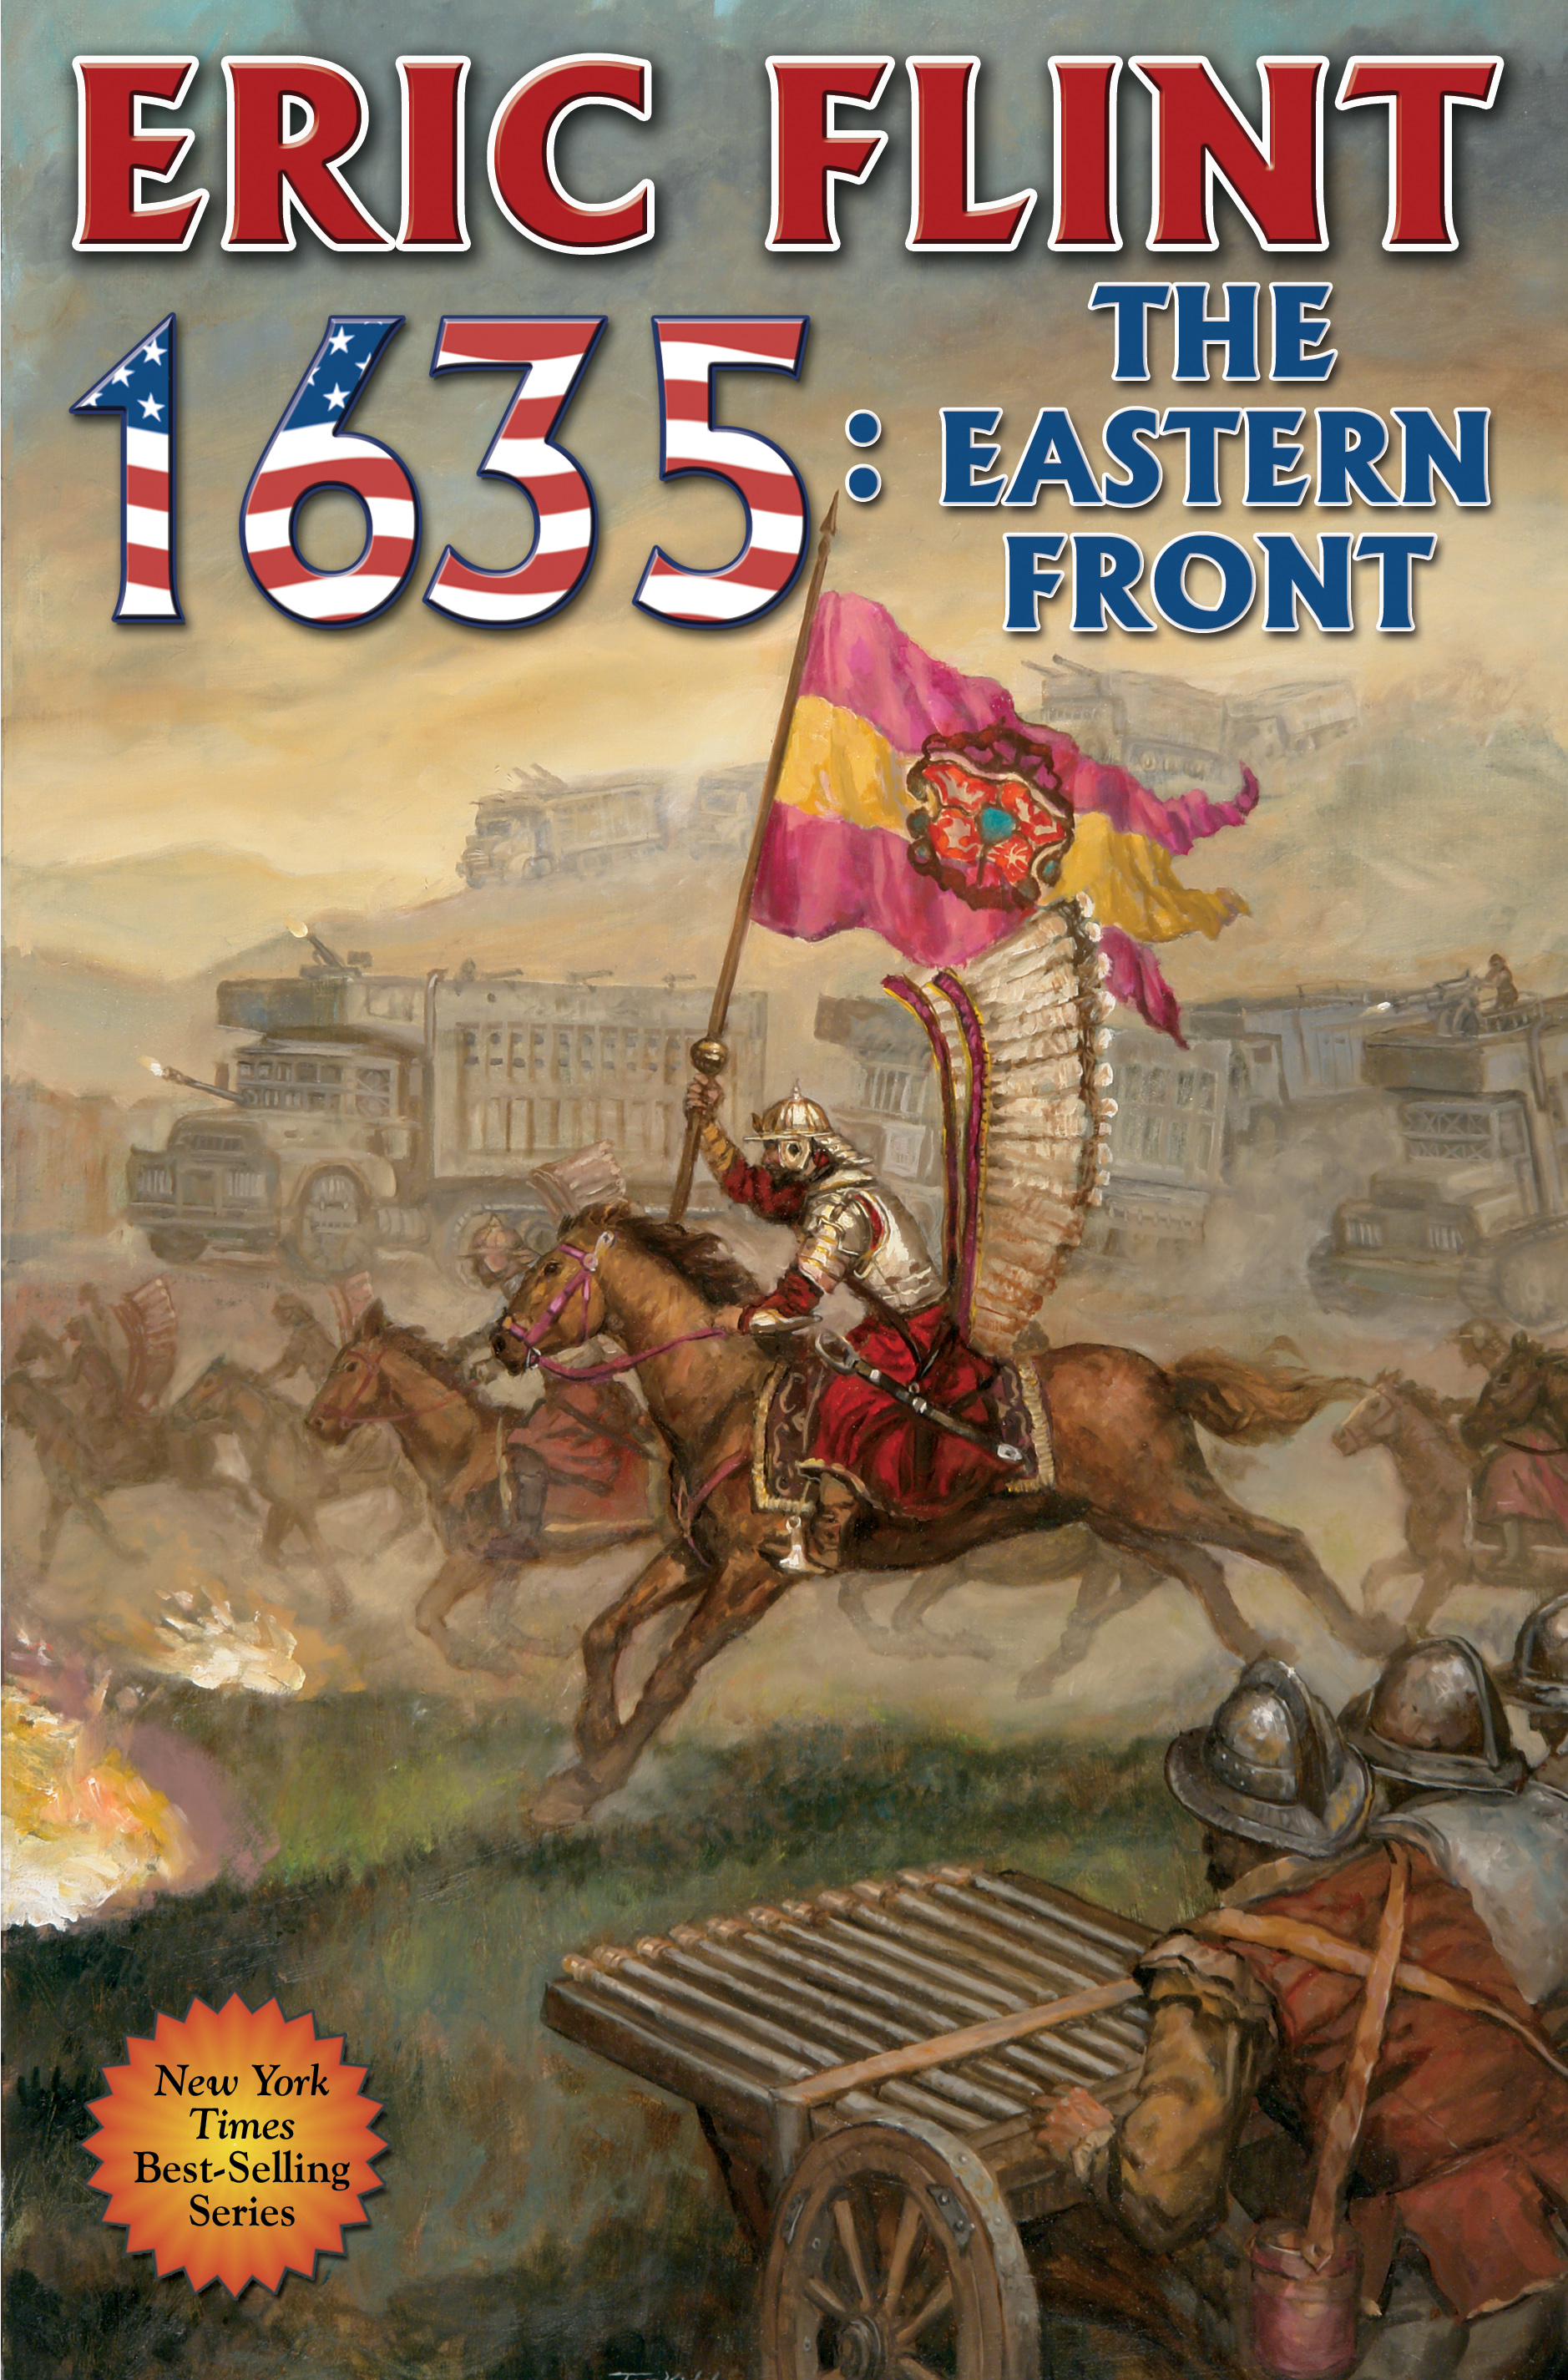 Book Cover Image (jpg): 1635: The Eastern Front